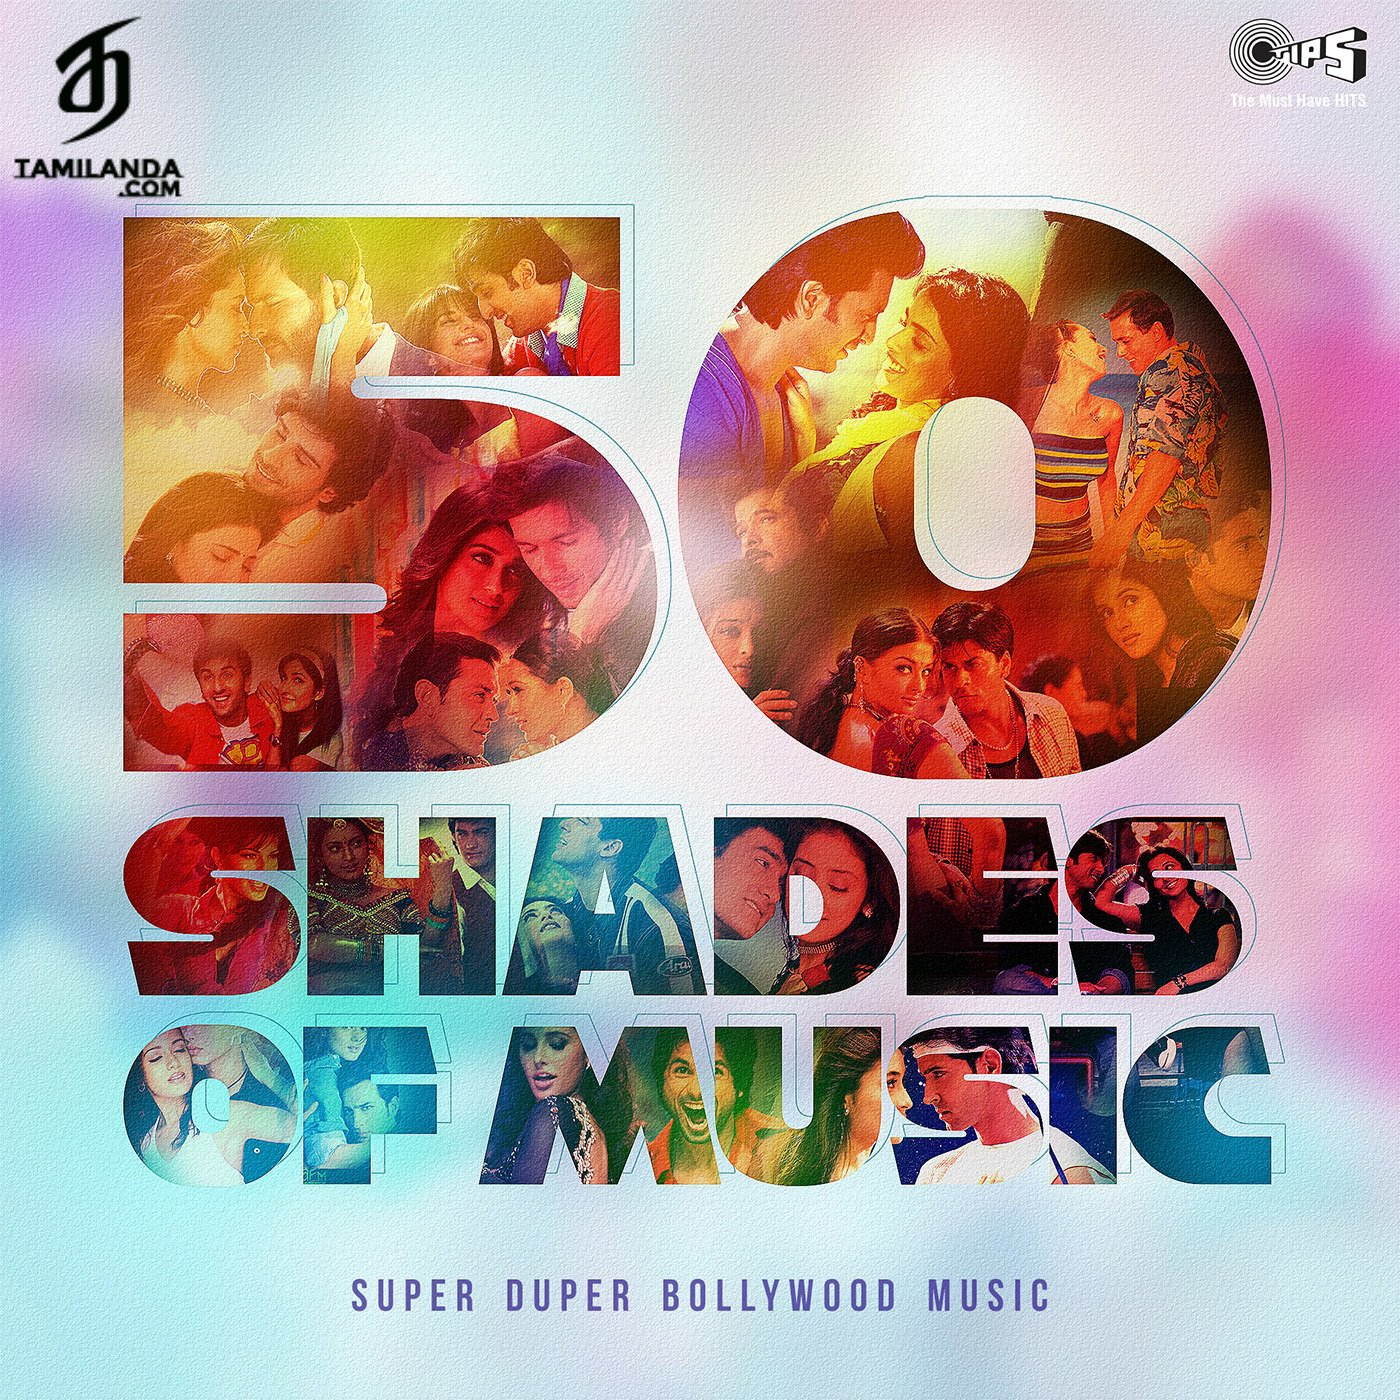 50 Shades Of Music – Super Duper Bollywood Music FLAC Songs [50 Tracks]